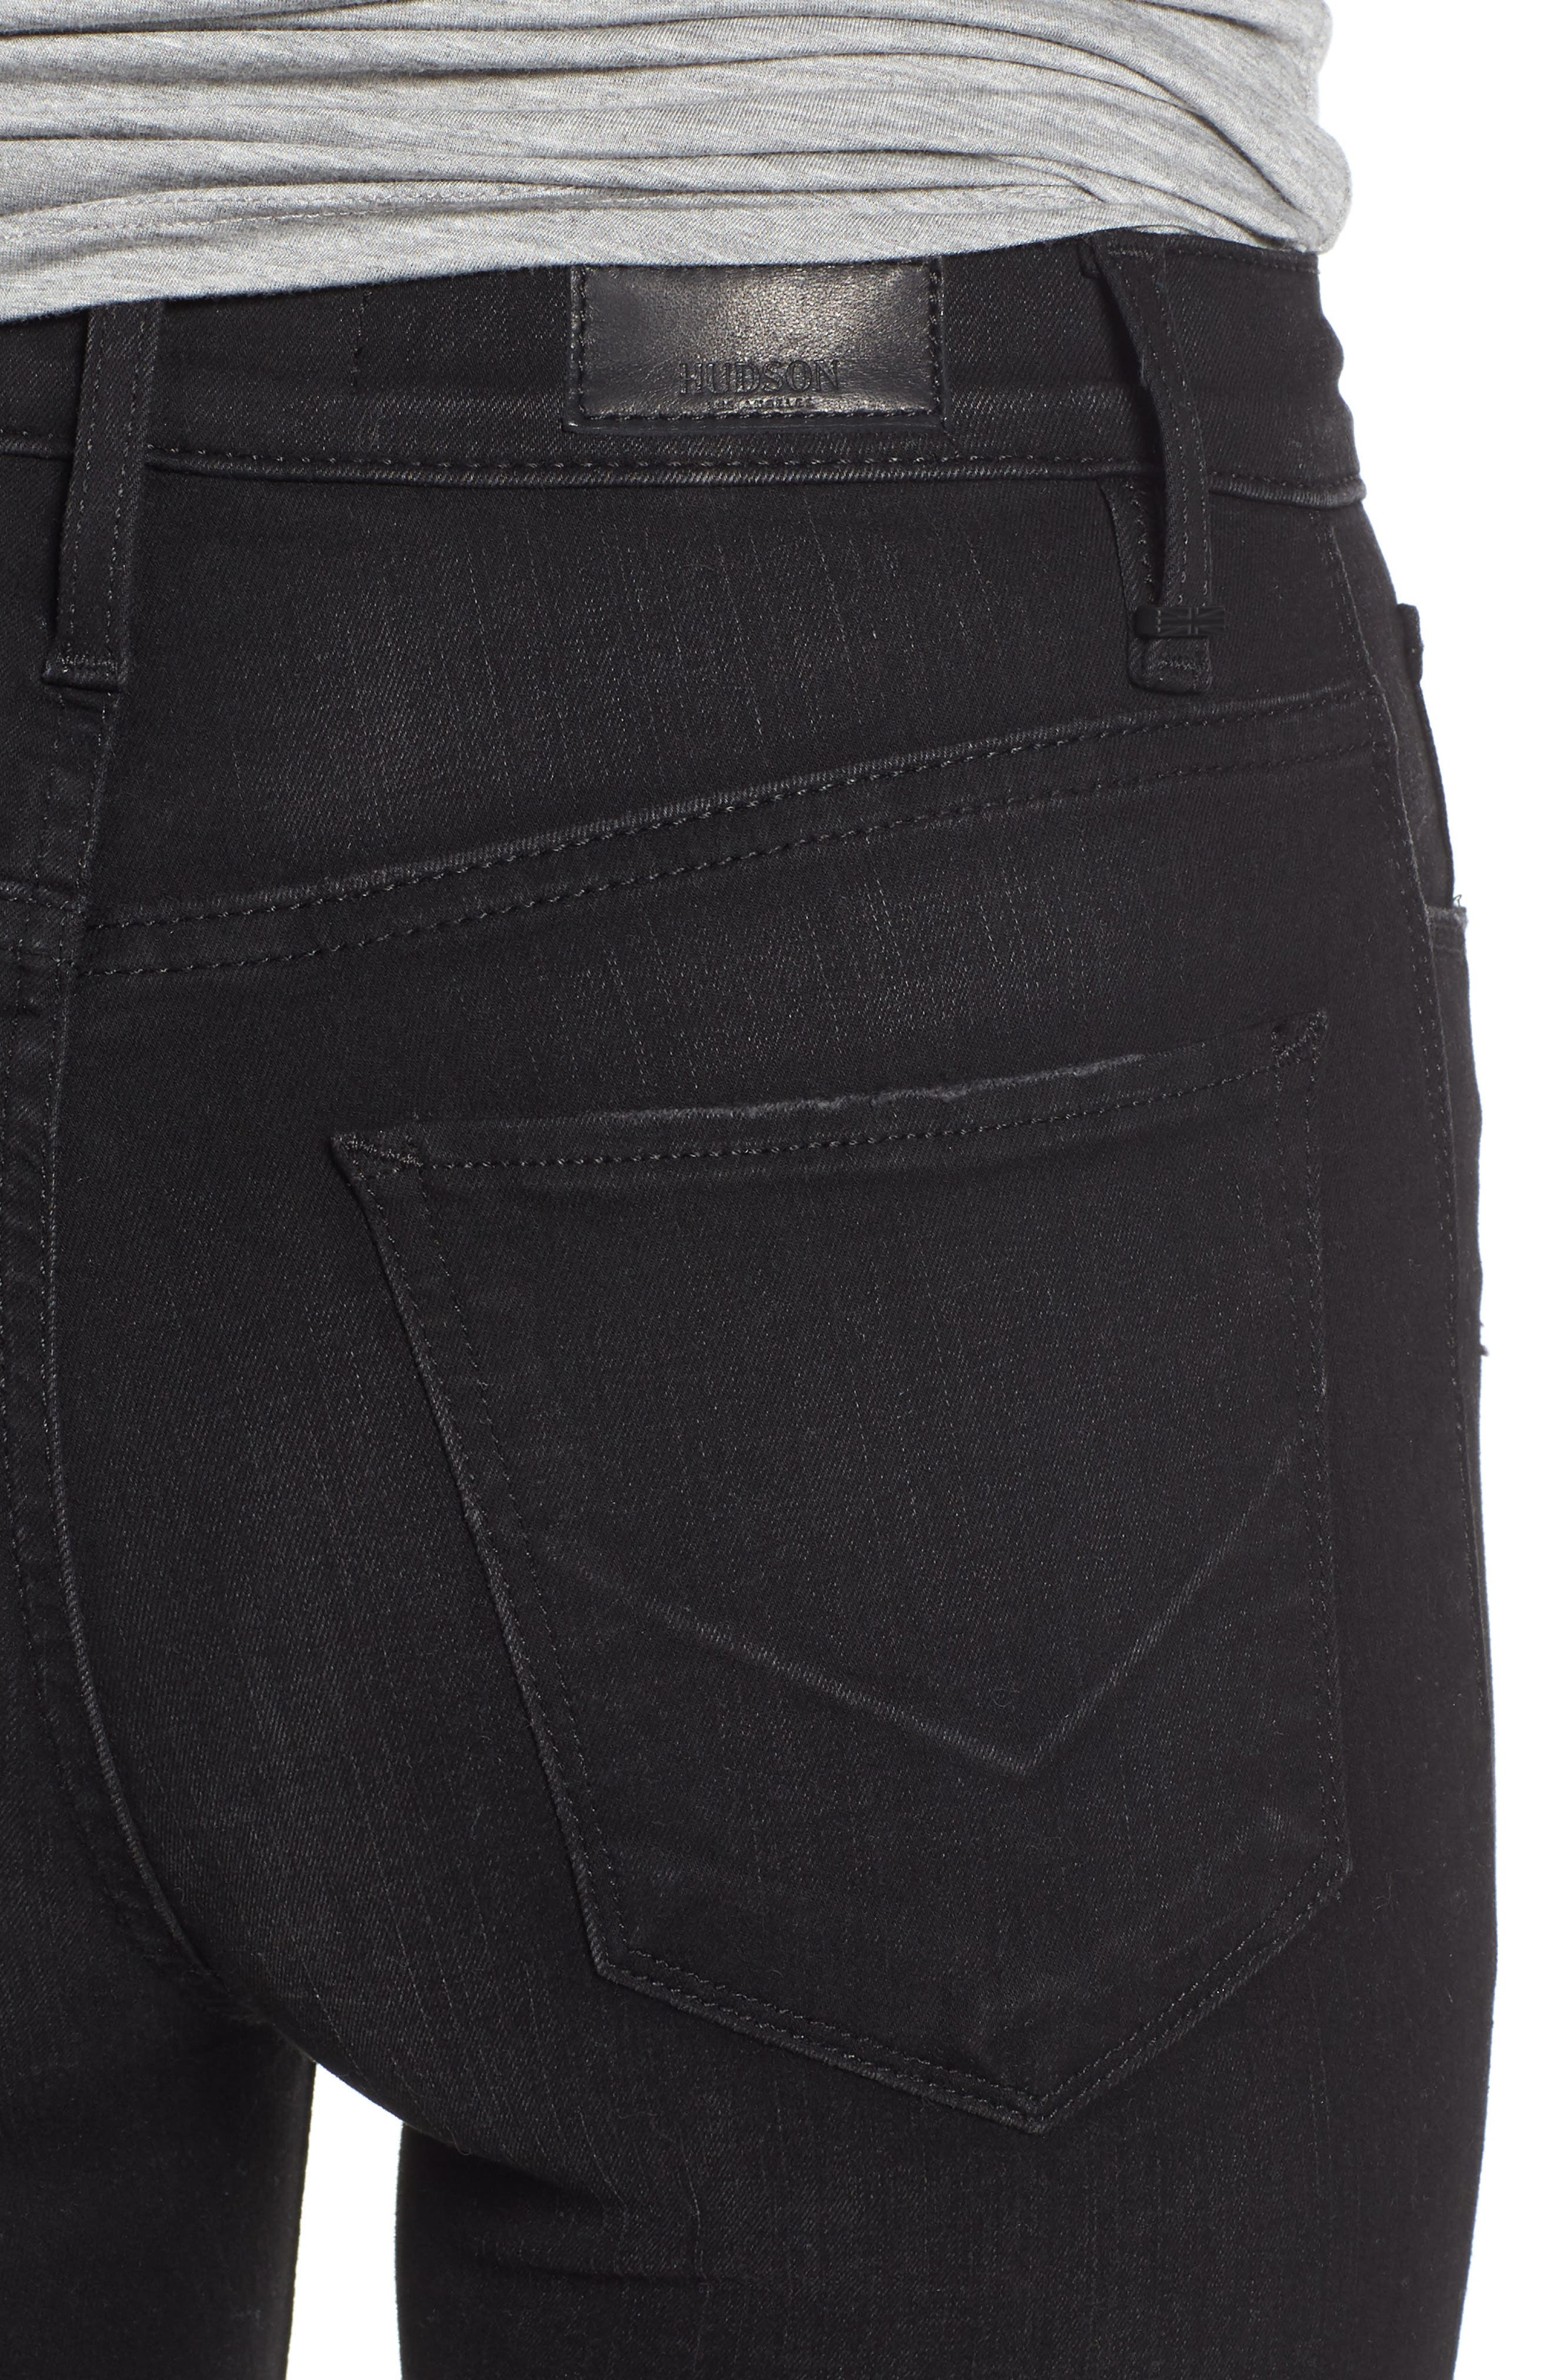 Barbara Ripped High Waist Super Skinny Jeans,                             Alternate thumbnail 4, color,                             WESTBOUND